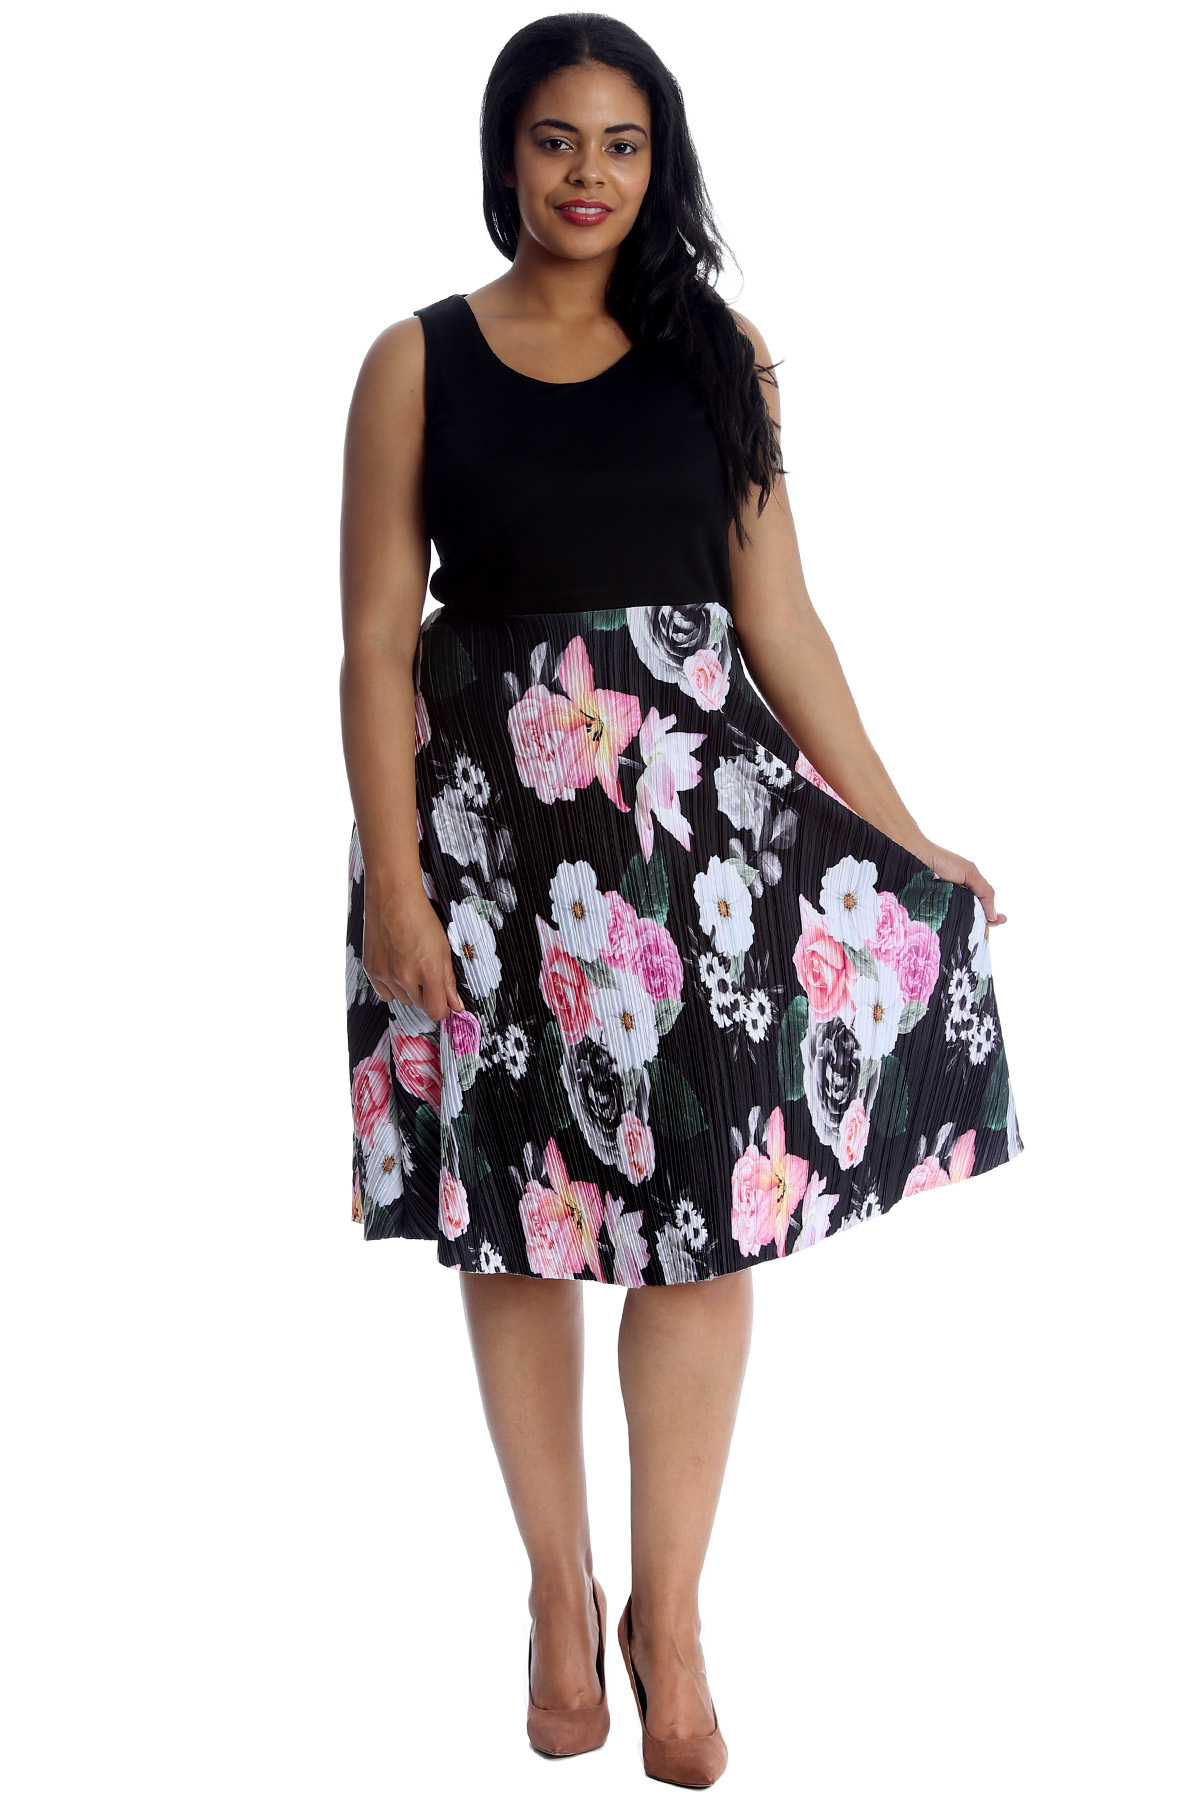 6584868d9baa New Womens Dress Plus Size Ladies Floral Print Skater Style Long ...